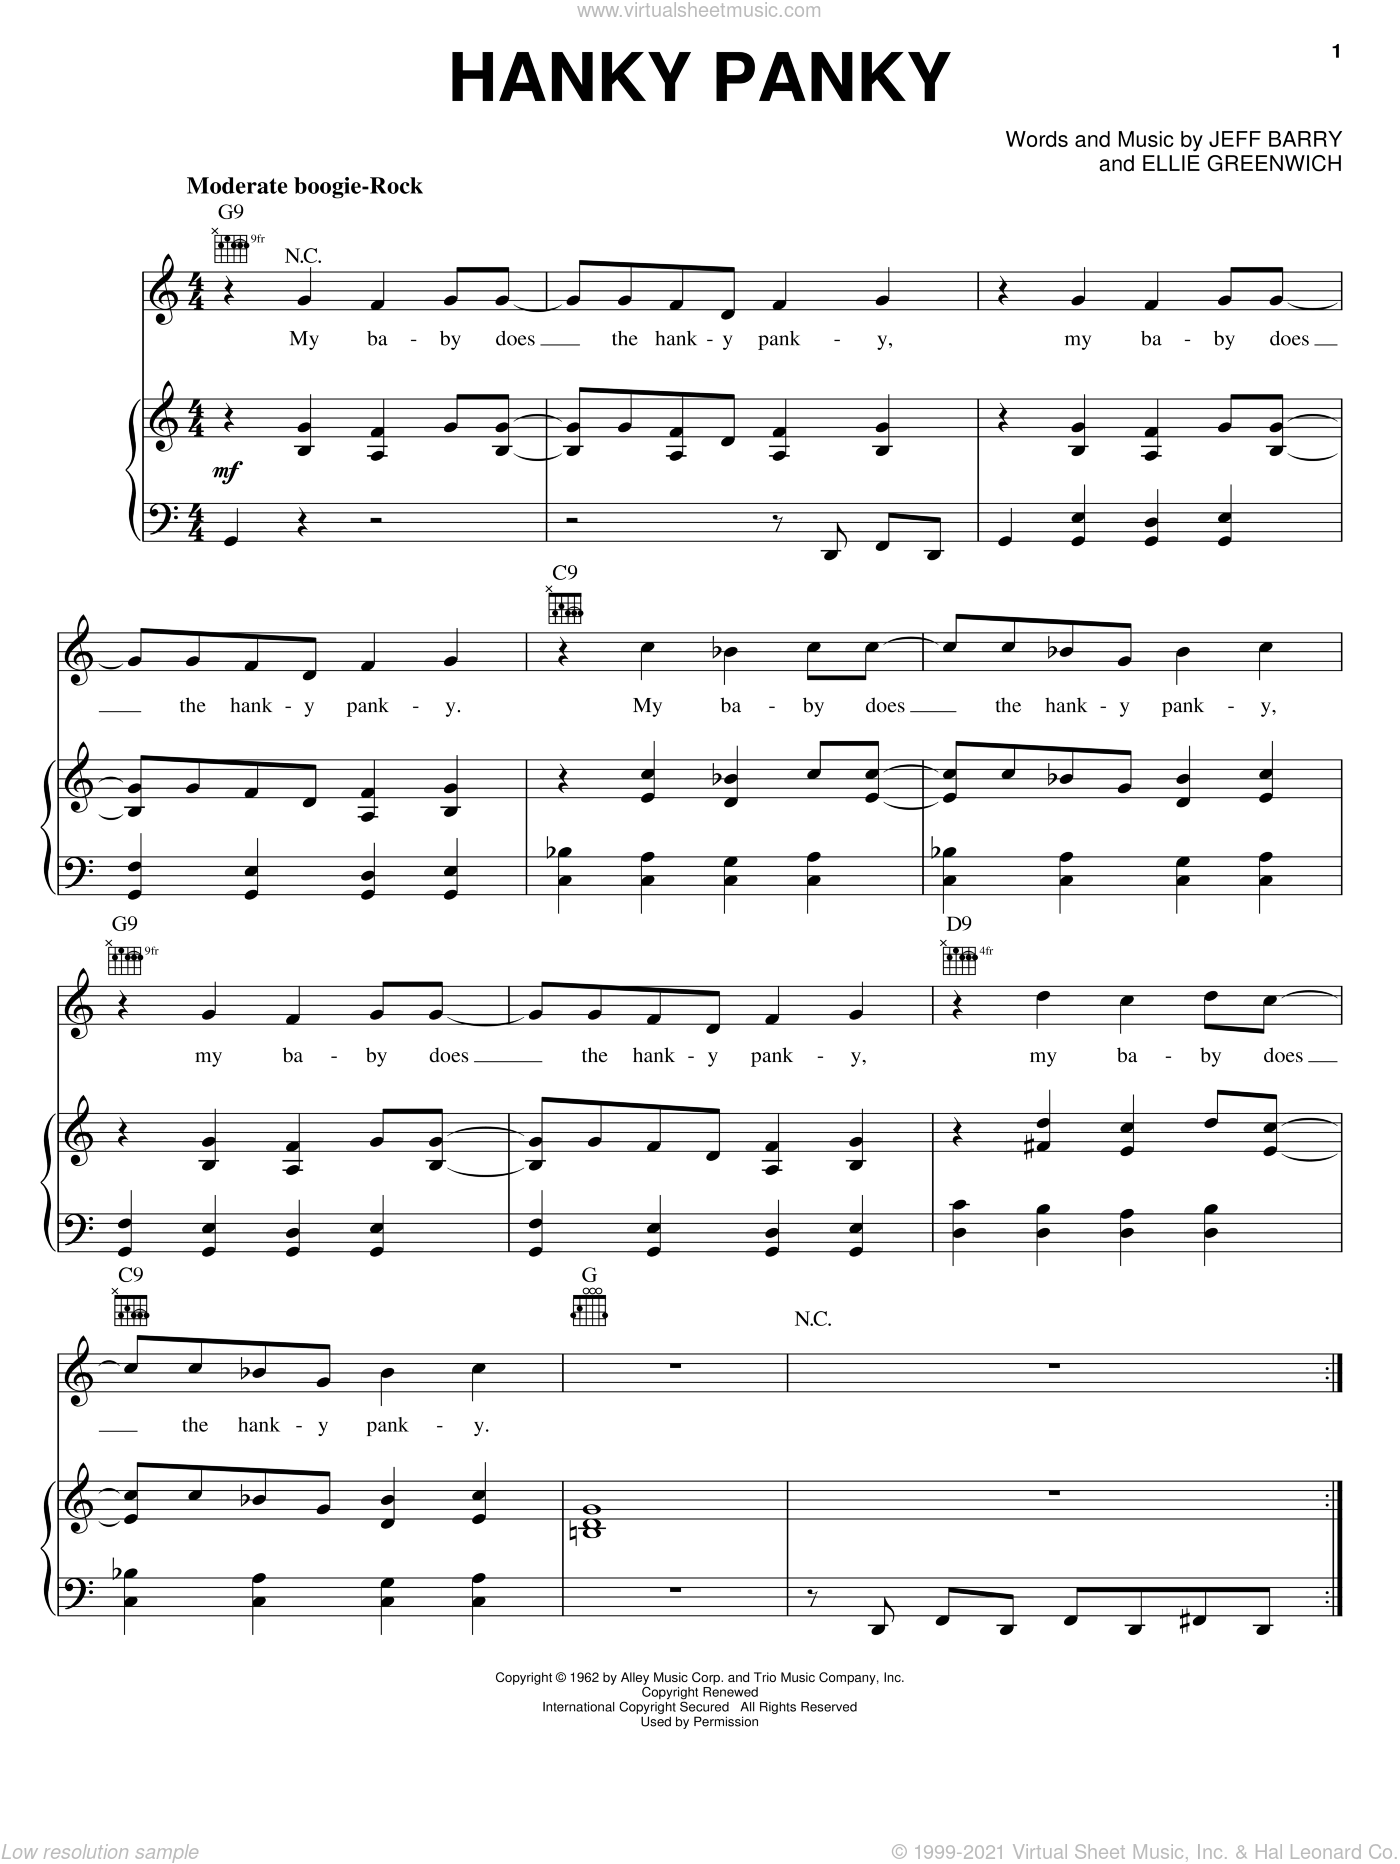 Hanky Panky sheet music for voice, piano or guitar by Jeff Barry, Tommy James & The Shondells and Ellie Greenwich. Score Image Preview.